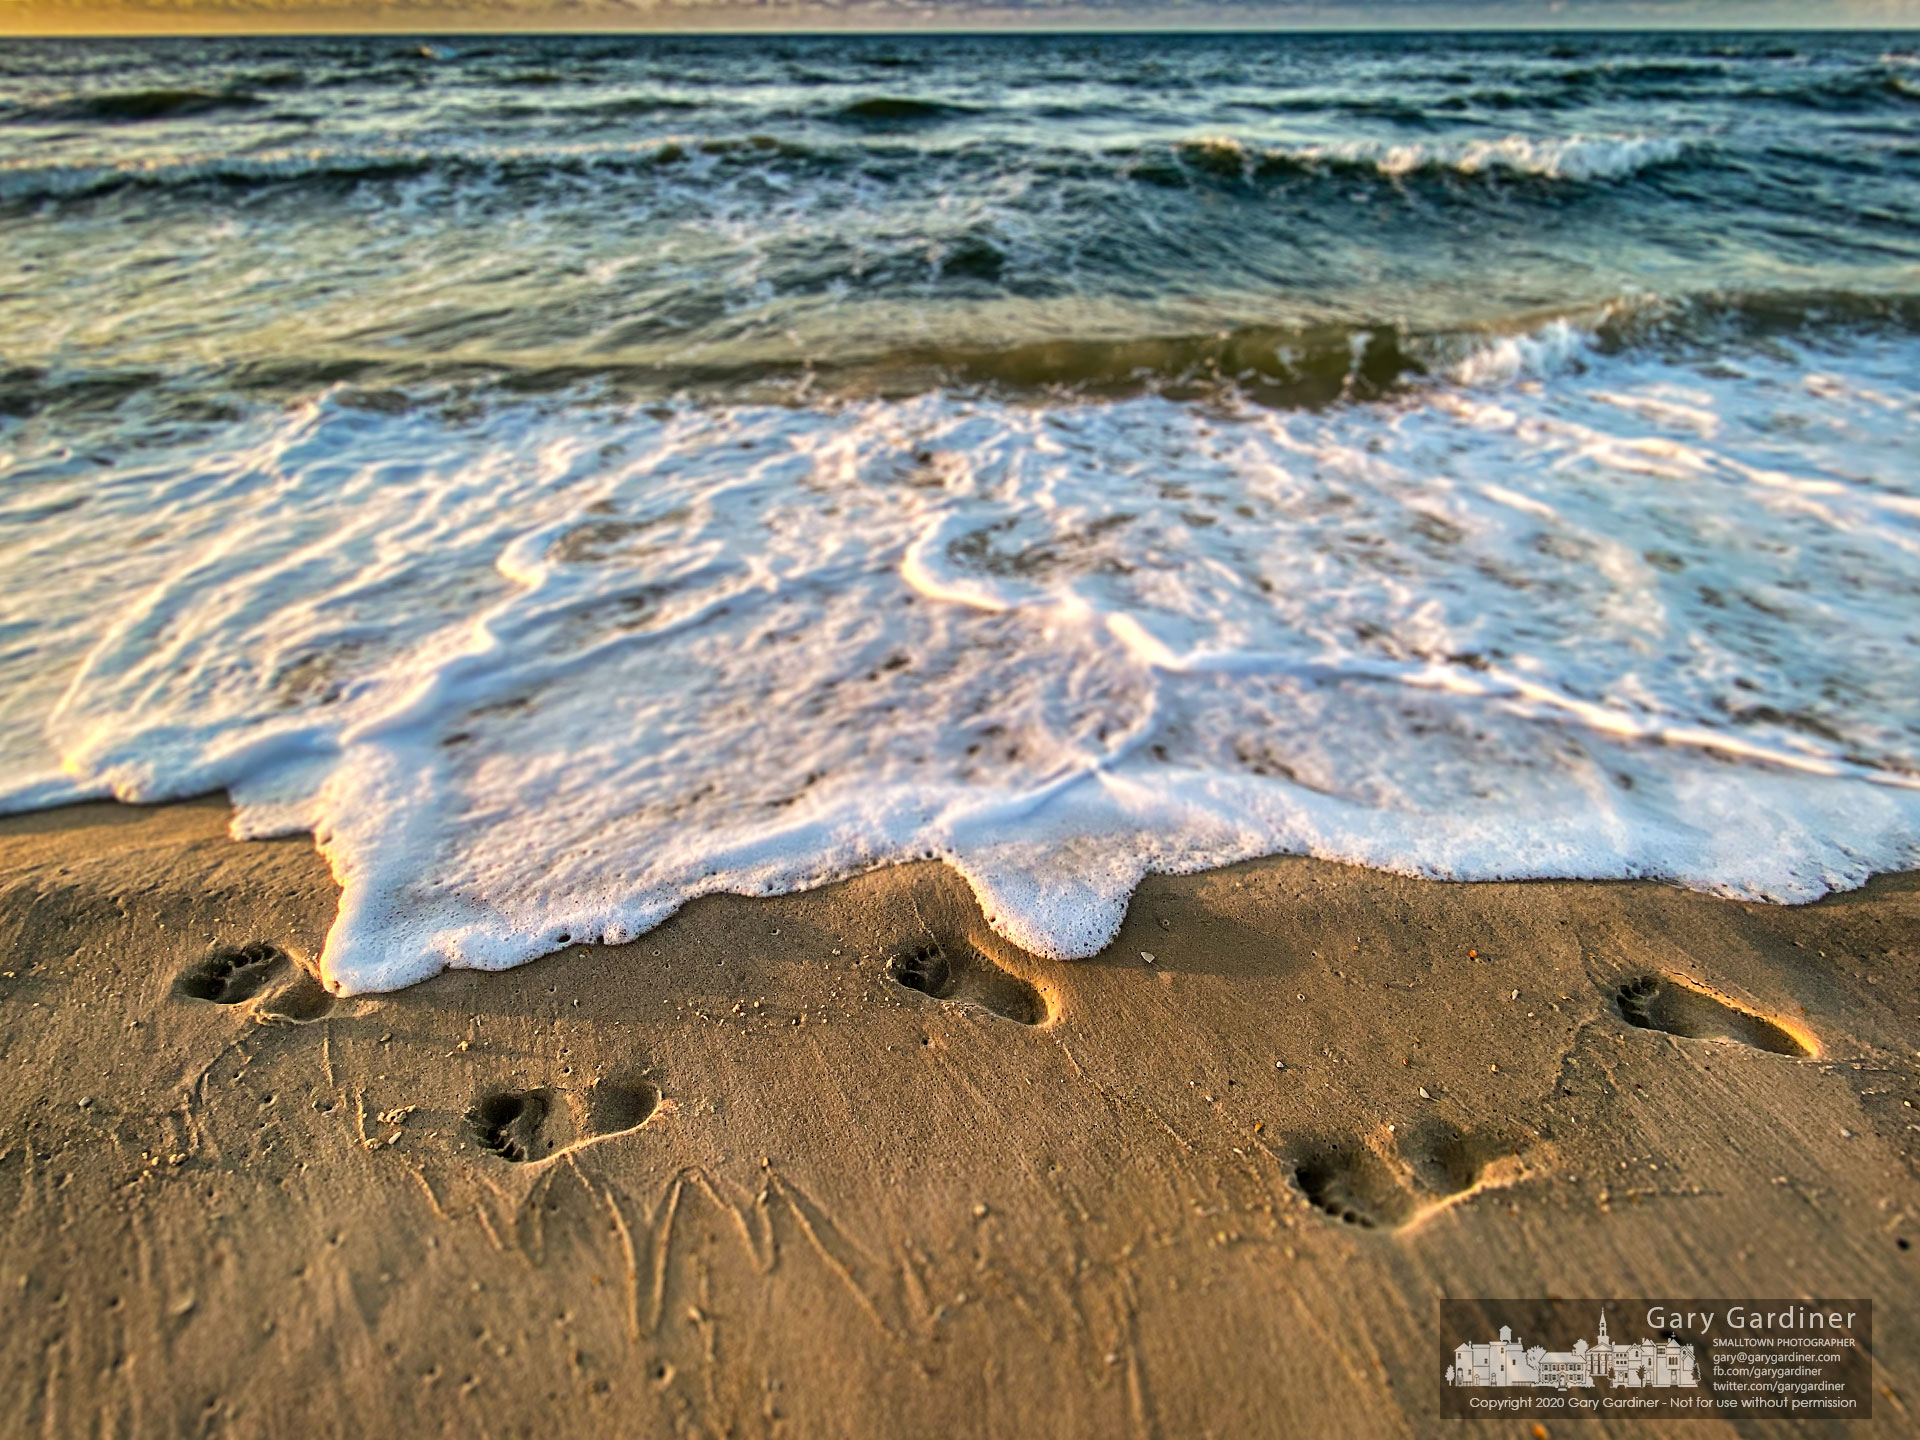 The incoming tide begins to wash away footsteps left in the sand by a vacationer on his last day at St. George Island, FL. My Final Photo for July 18, 2020.